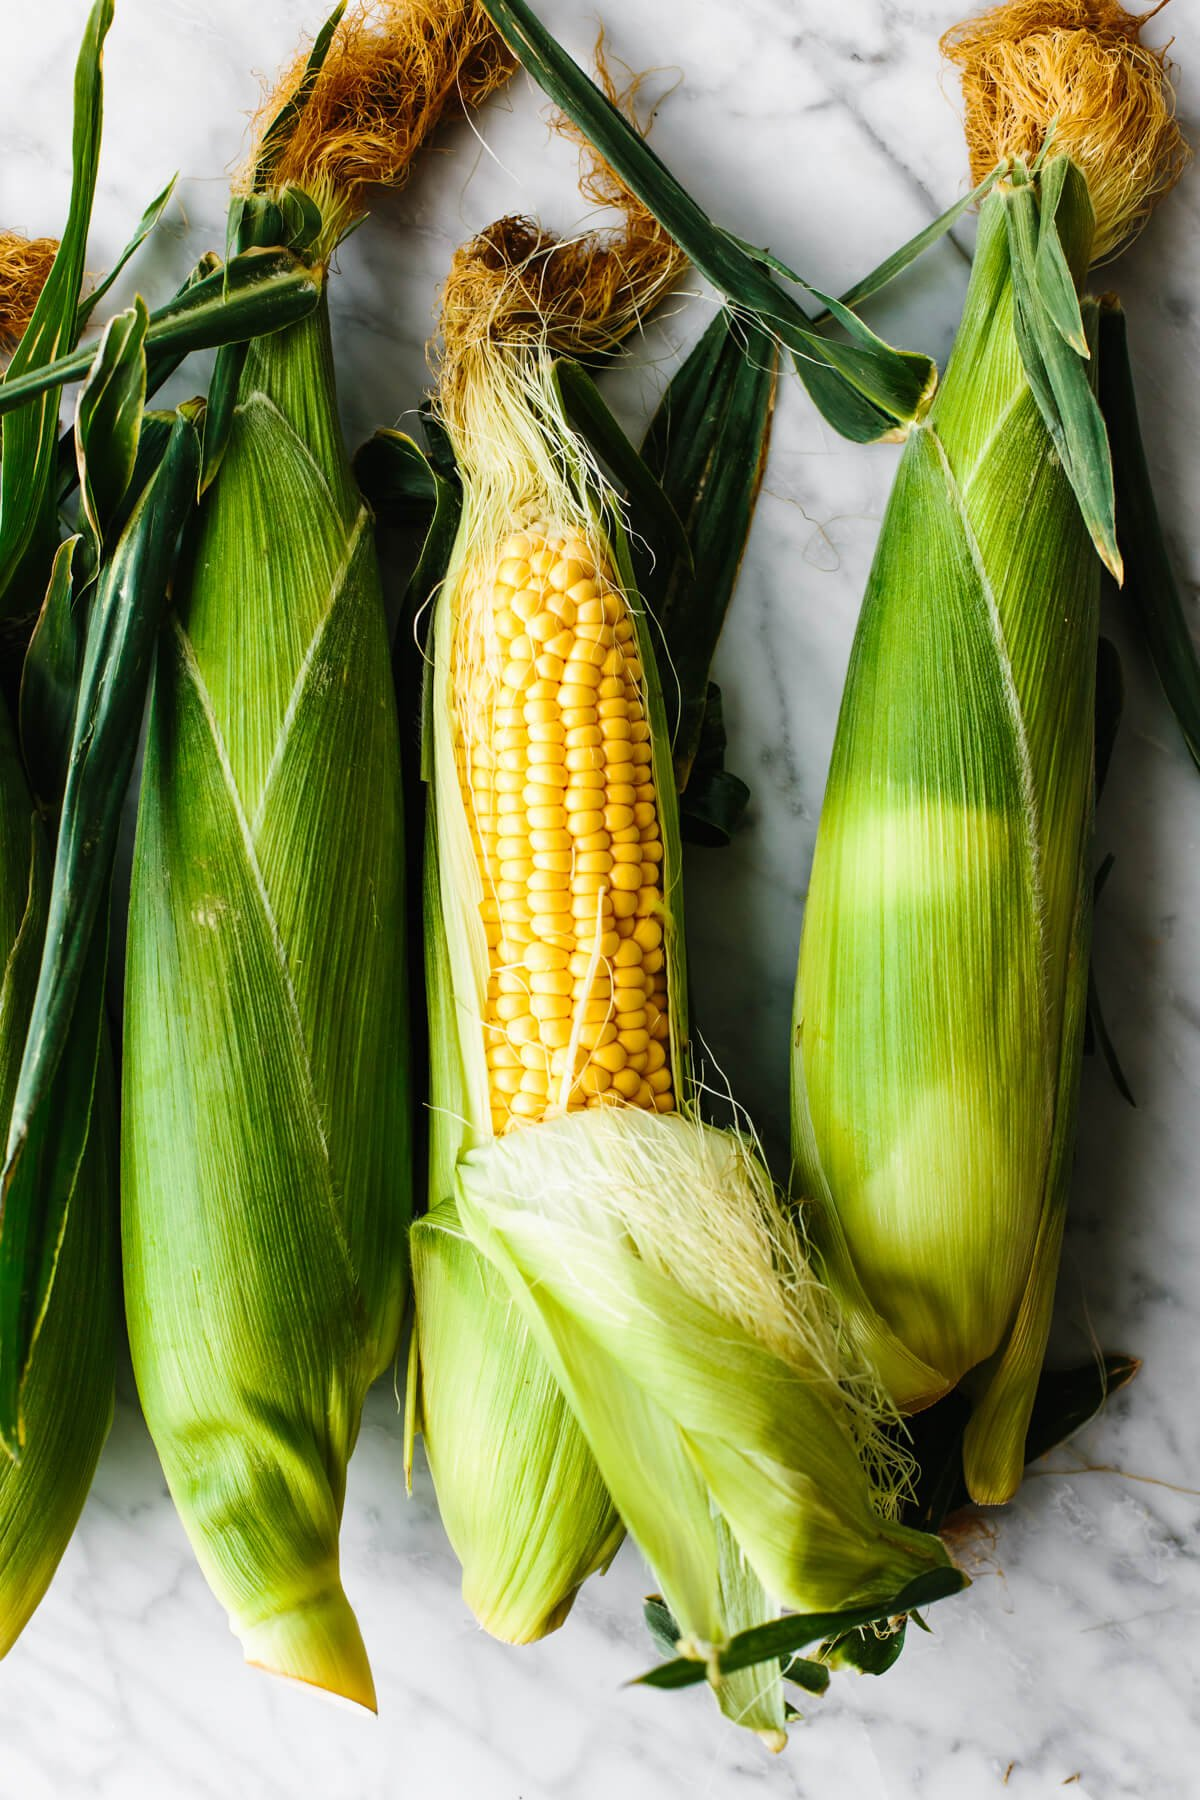 Fresh ears of corn for grilled corn on the cob